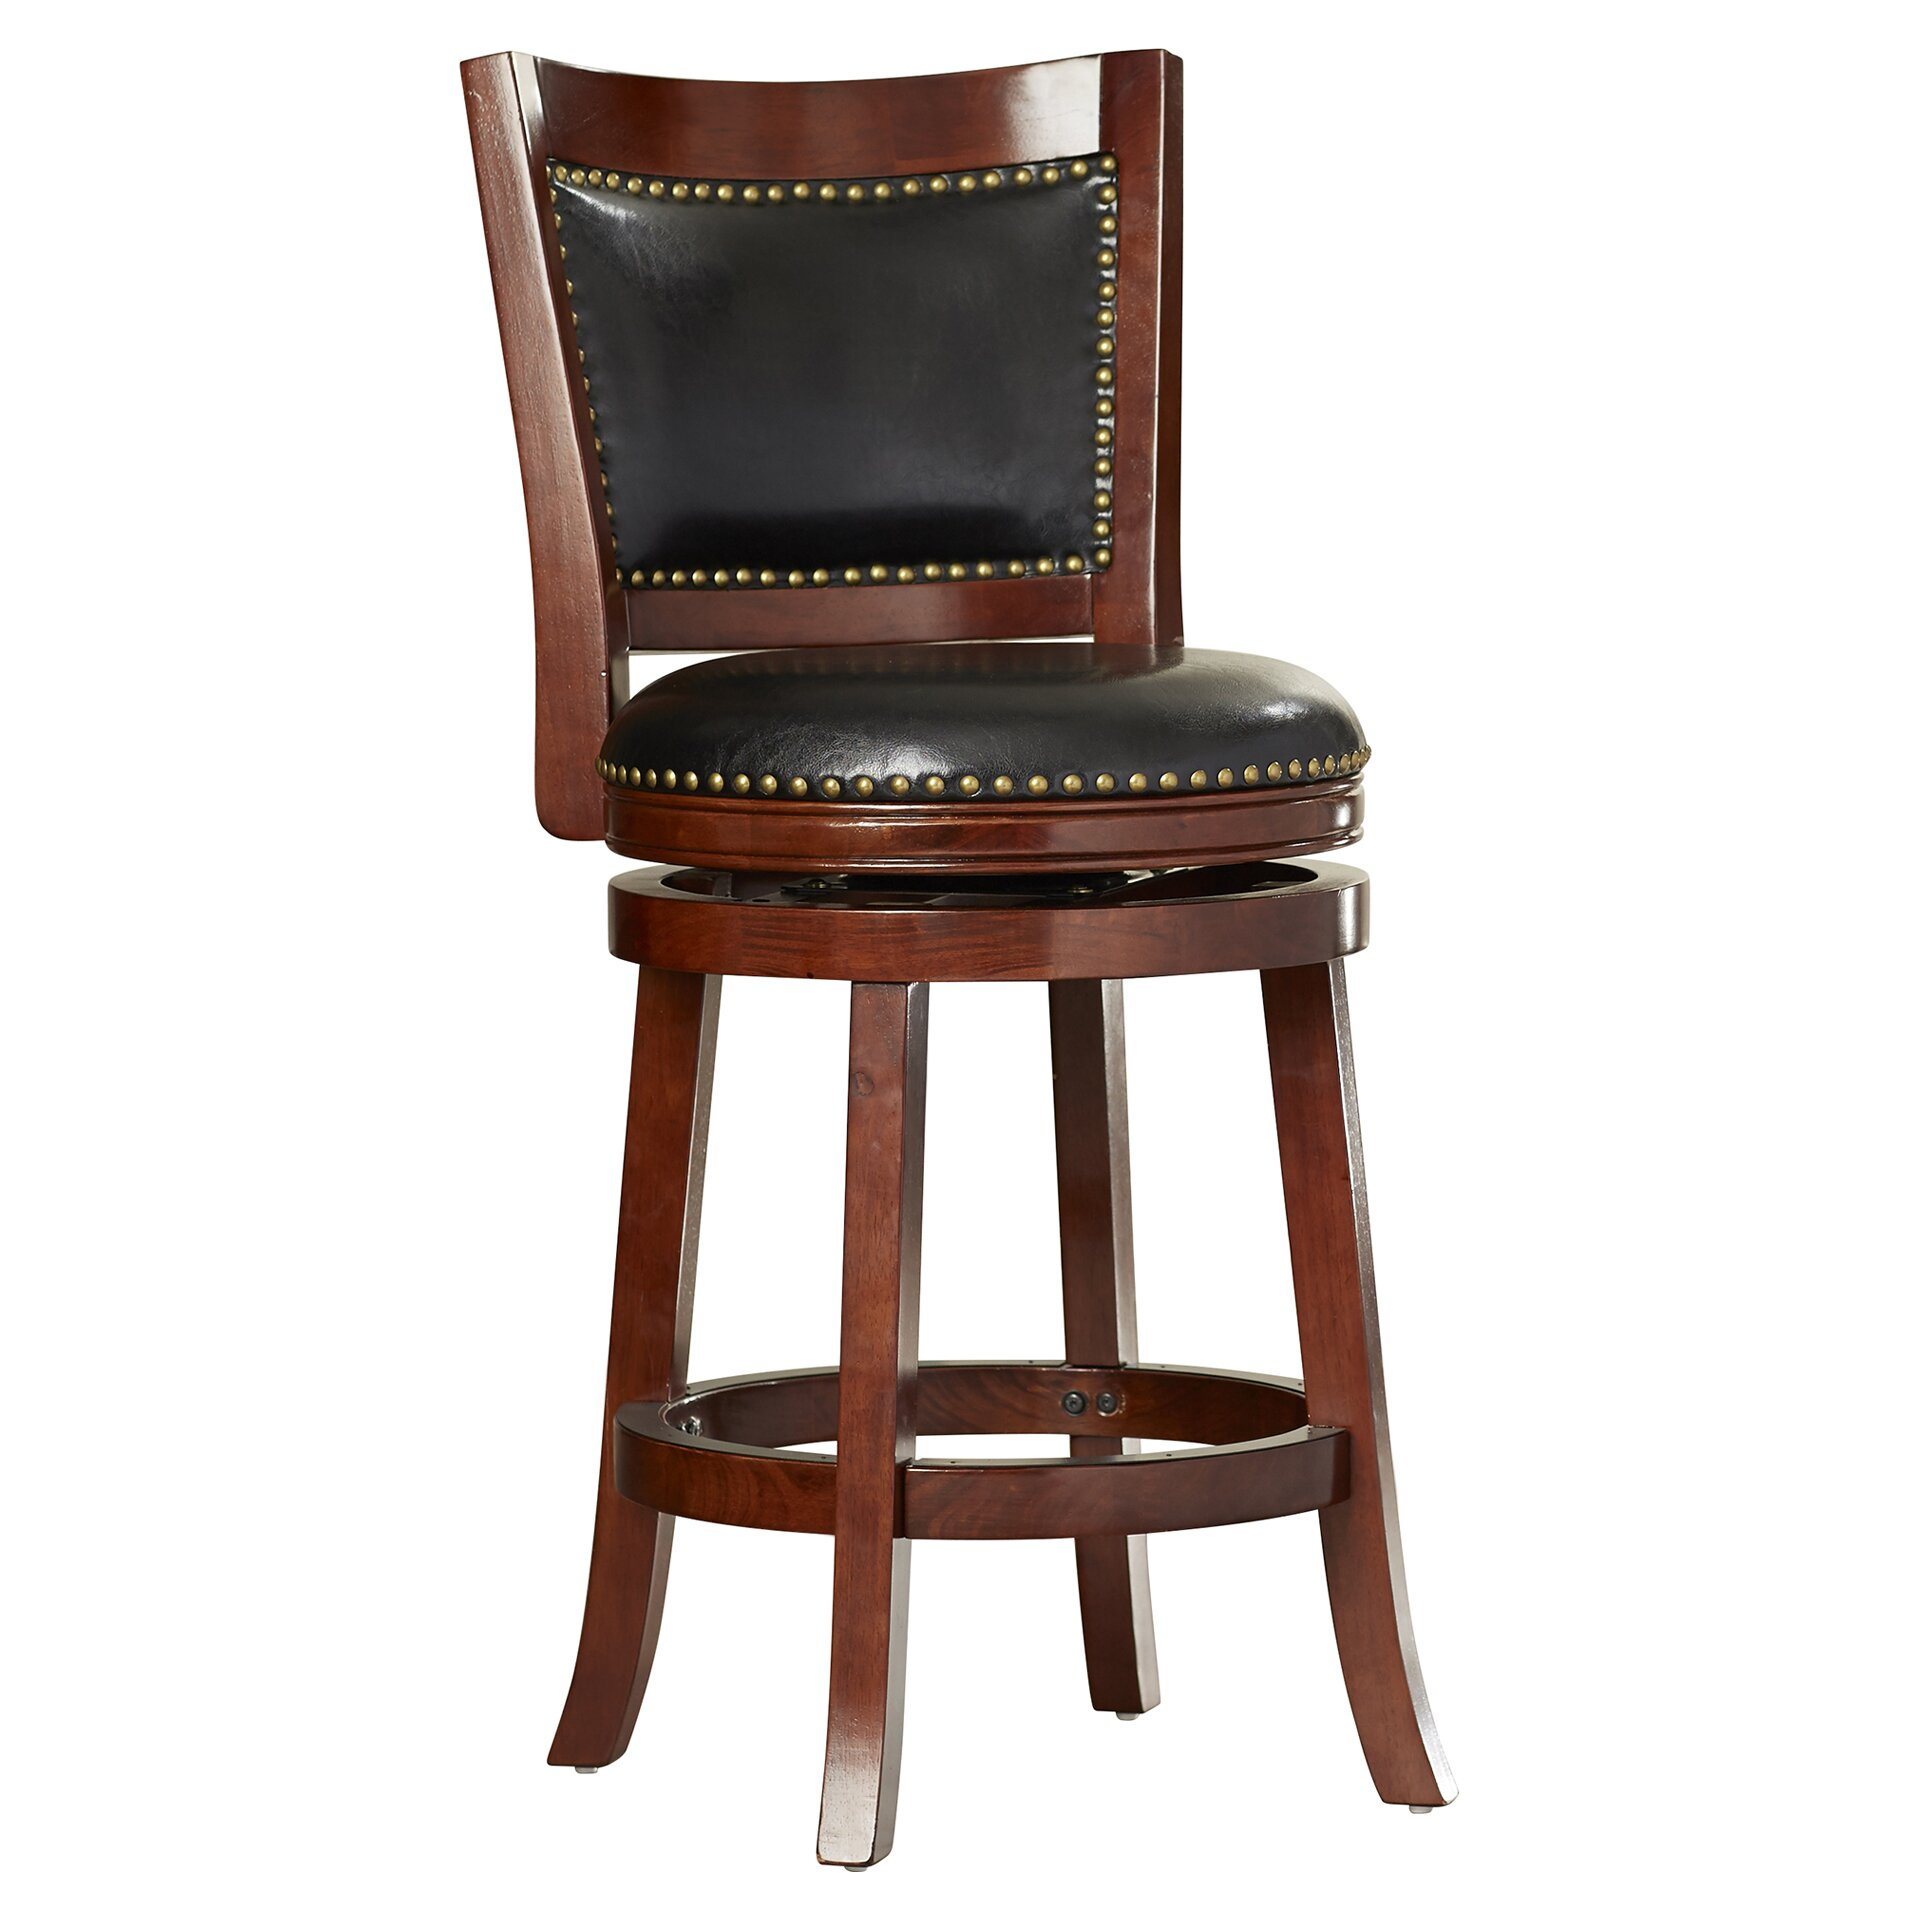 Darby Home Co Carstensen 24 Quot Swivel Bar Stool Amp Reviews